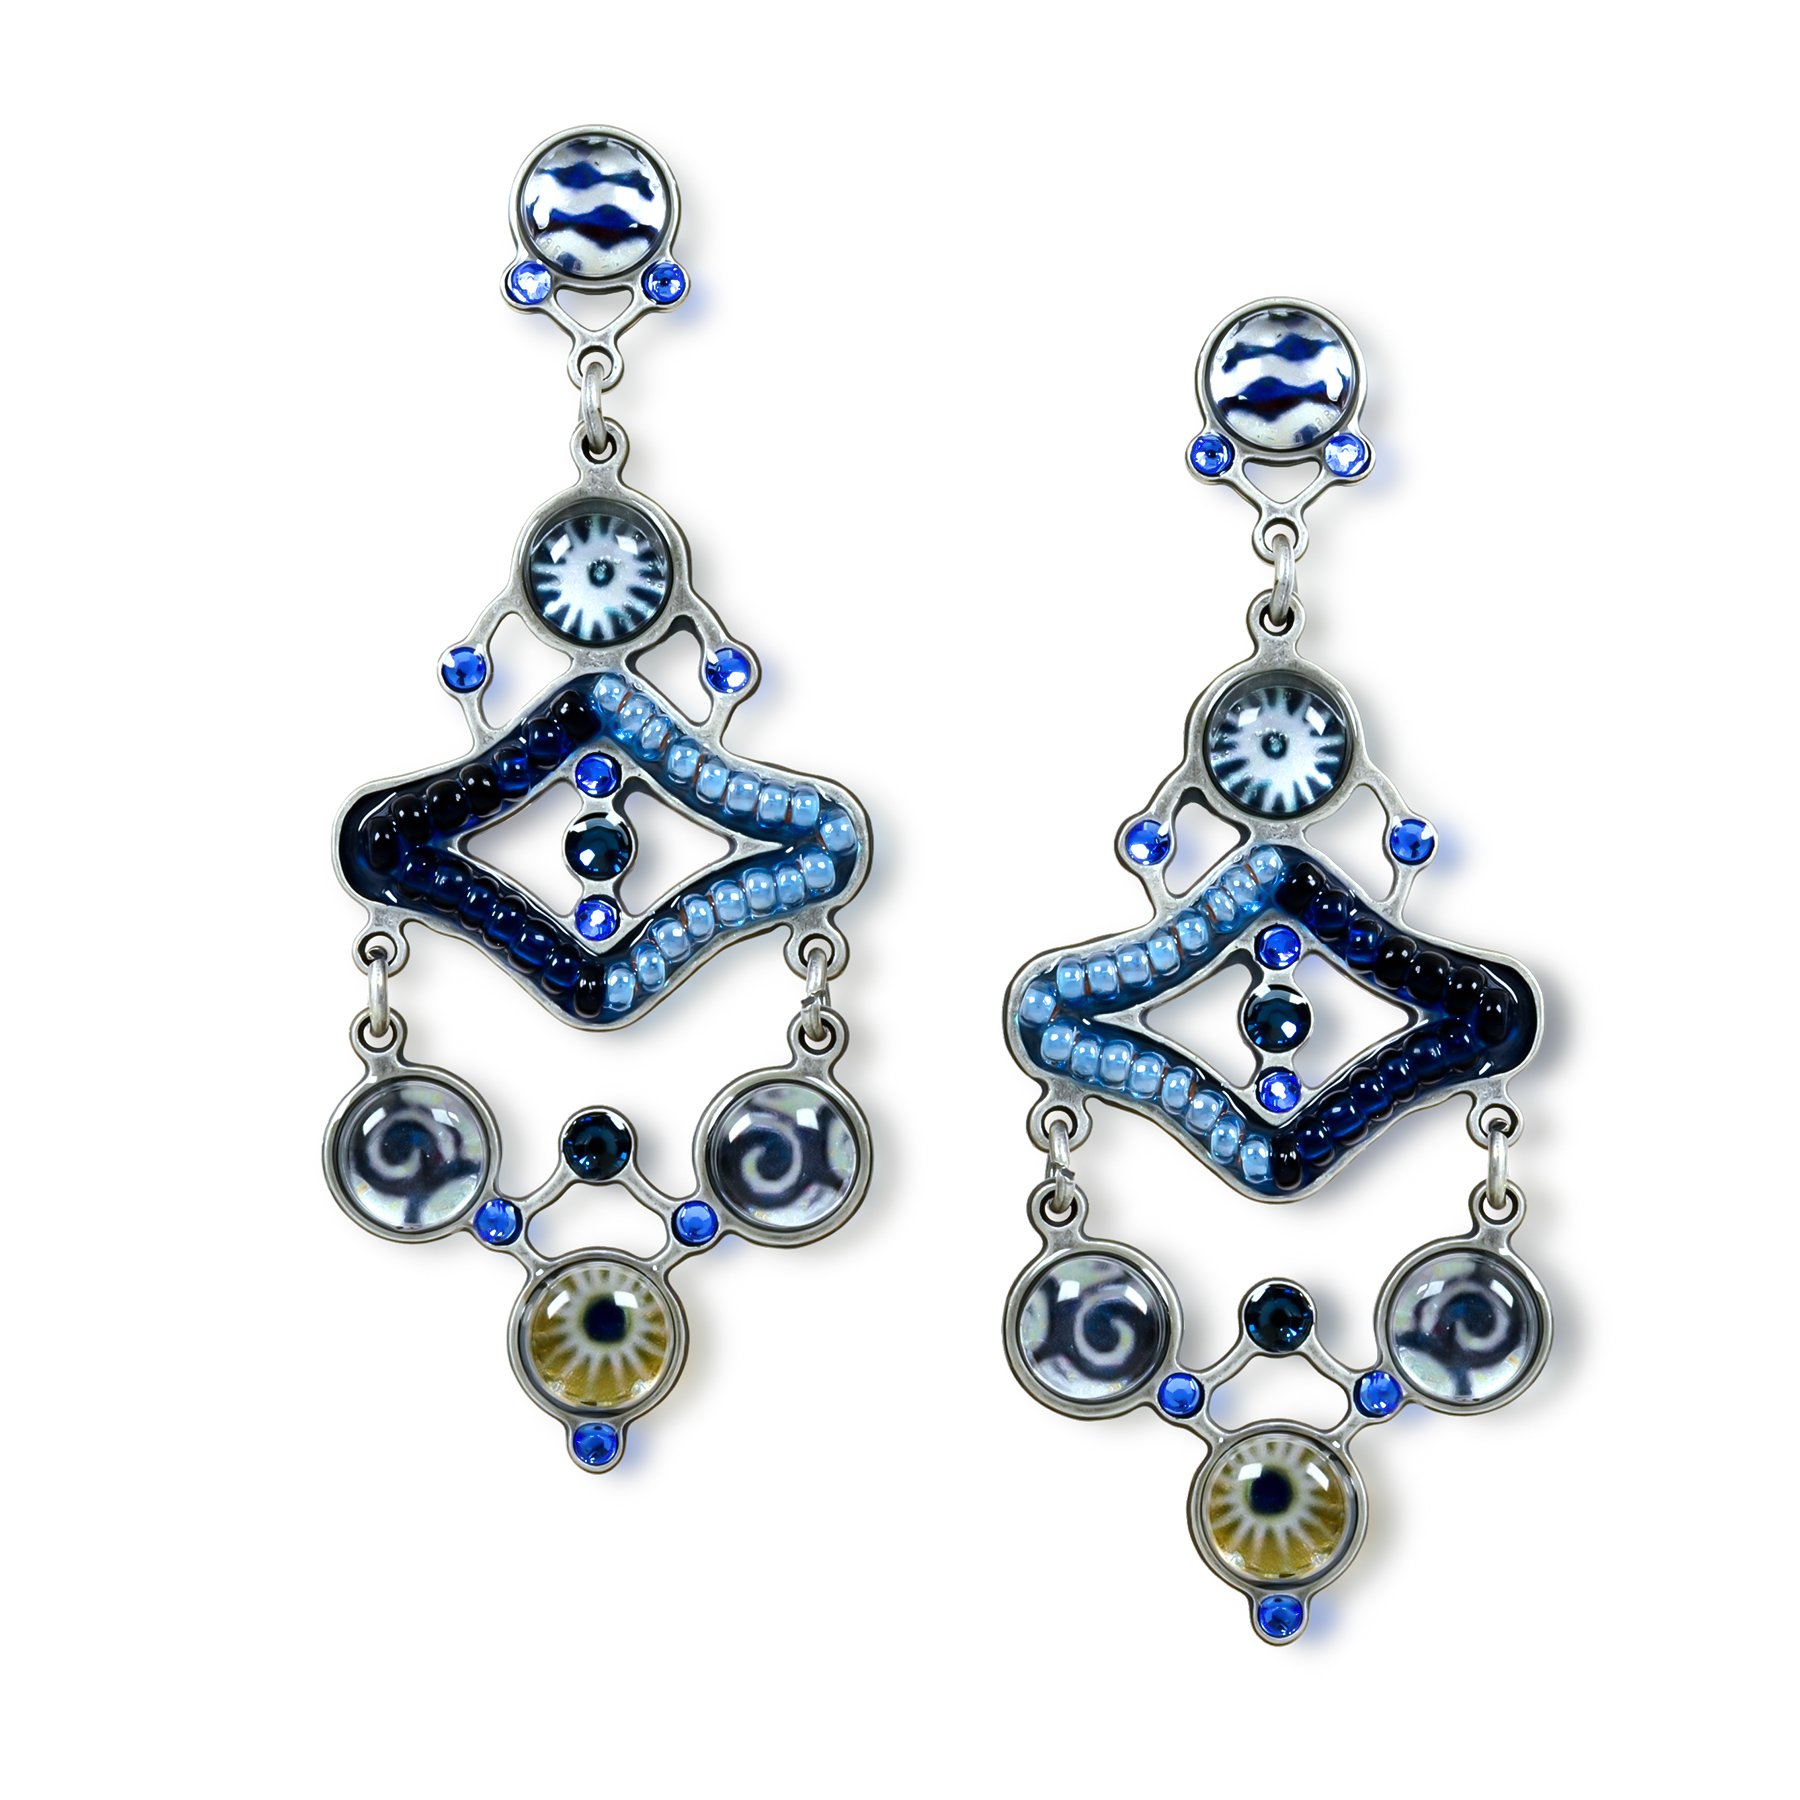 Starry-Night Fashion Earrings, Spring-Summer Collection from Artazia - E3705